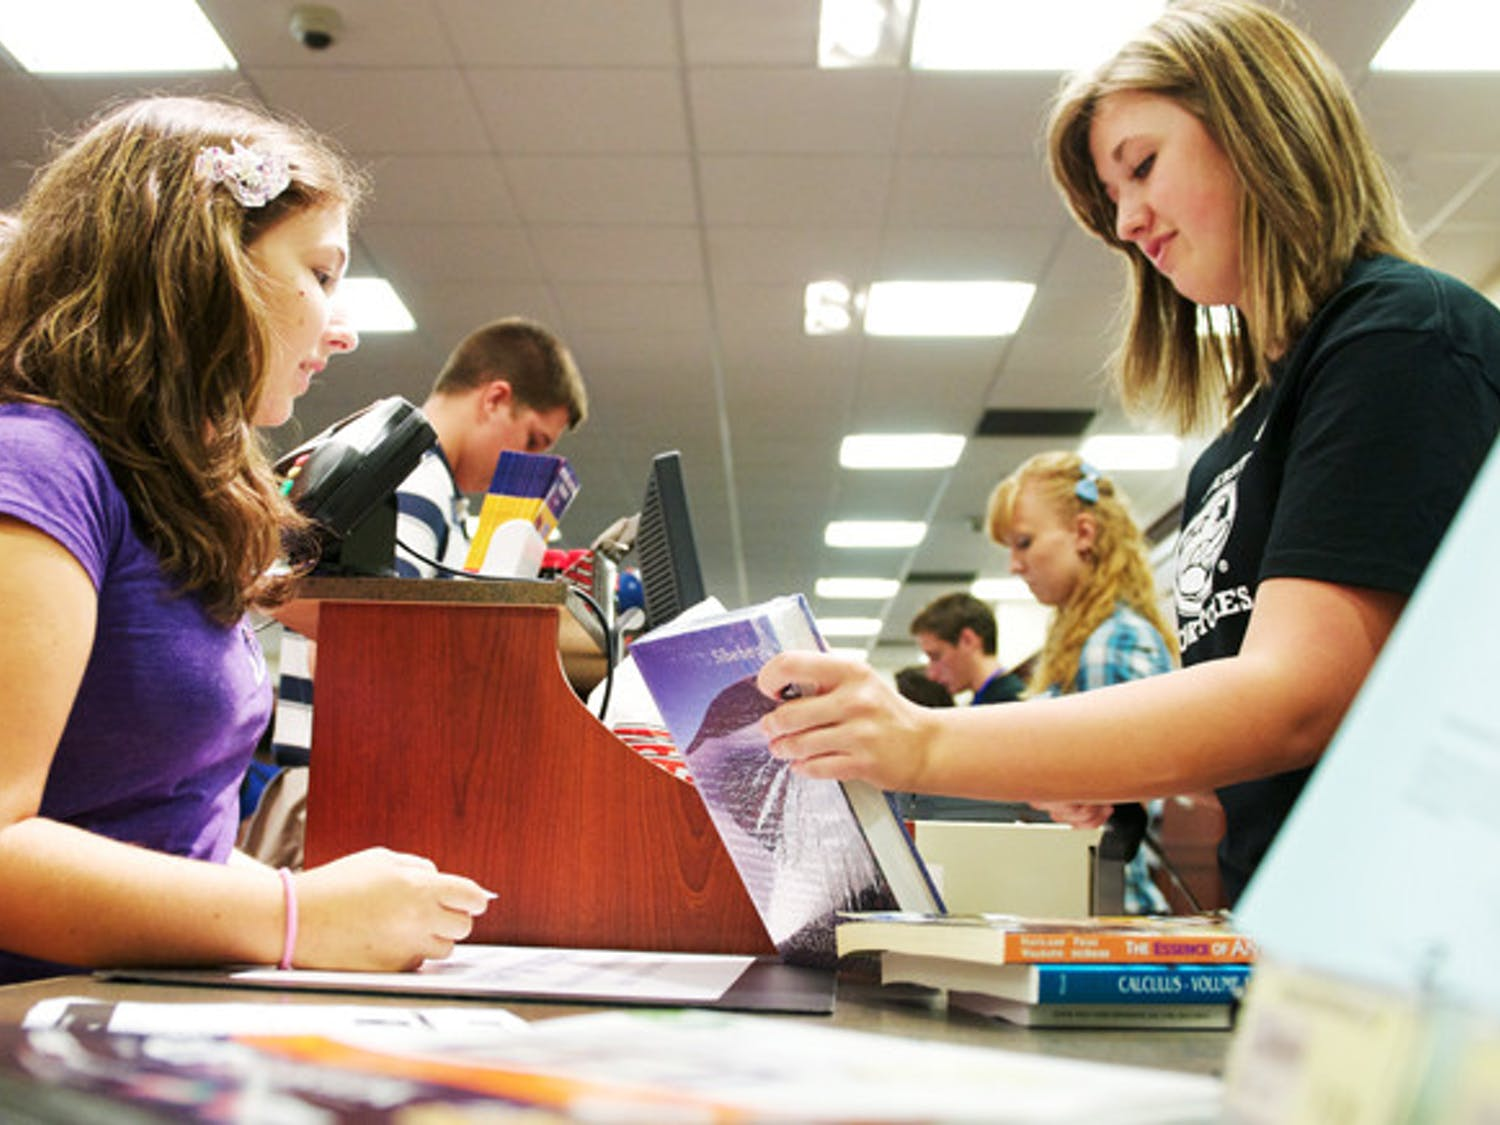 UF freshman Christina Lynch, left, purchases a textbook at the UF Bookstore inside the Reitz Union on Thursday, Aug. 22, 2011.